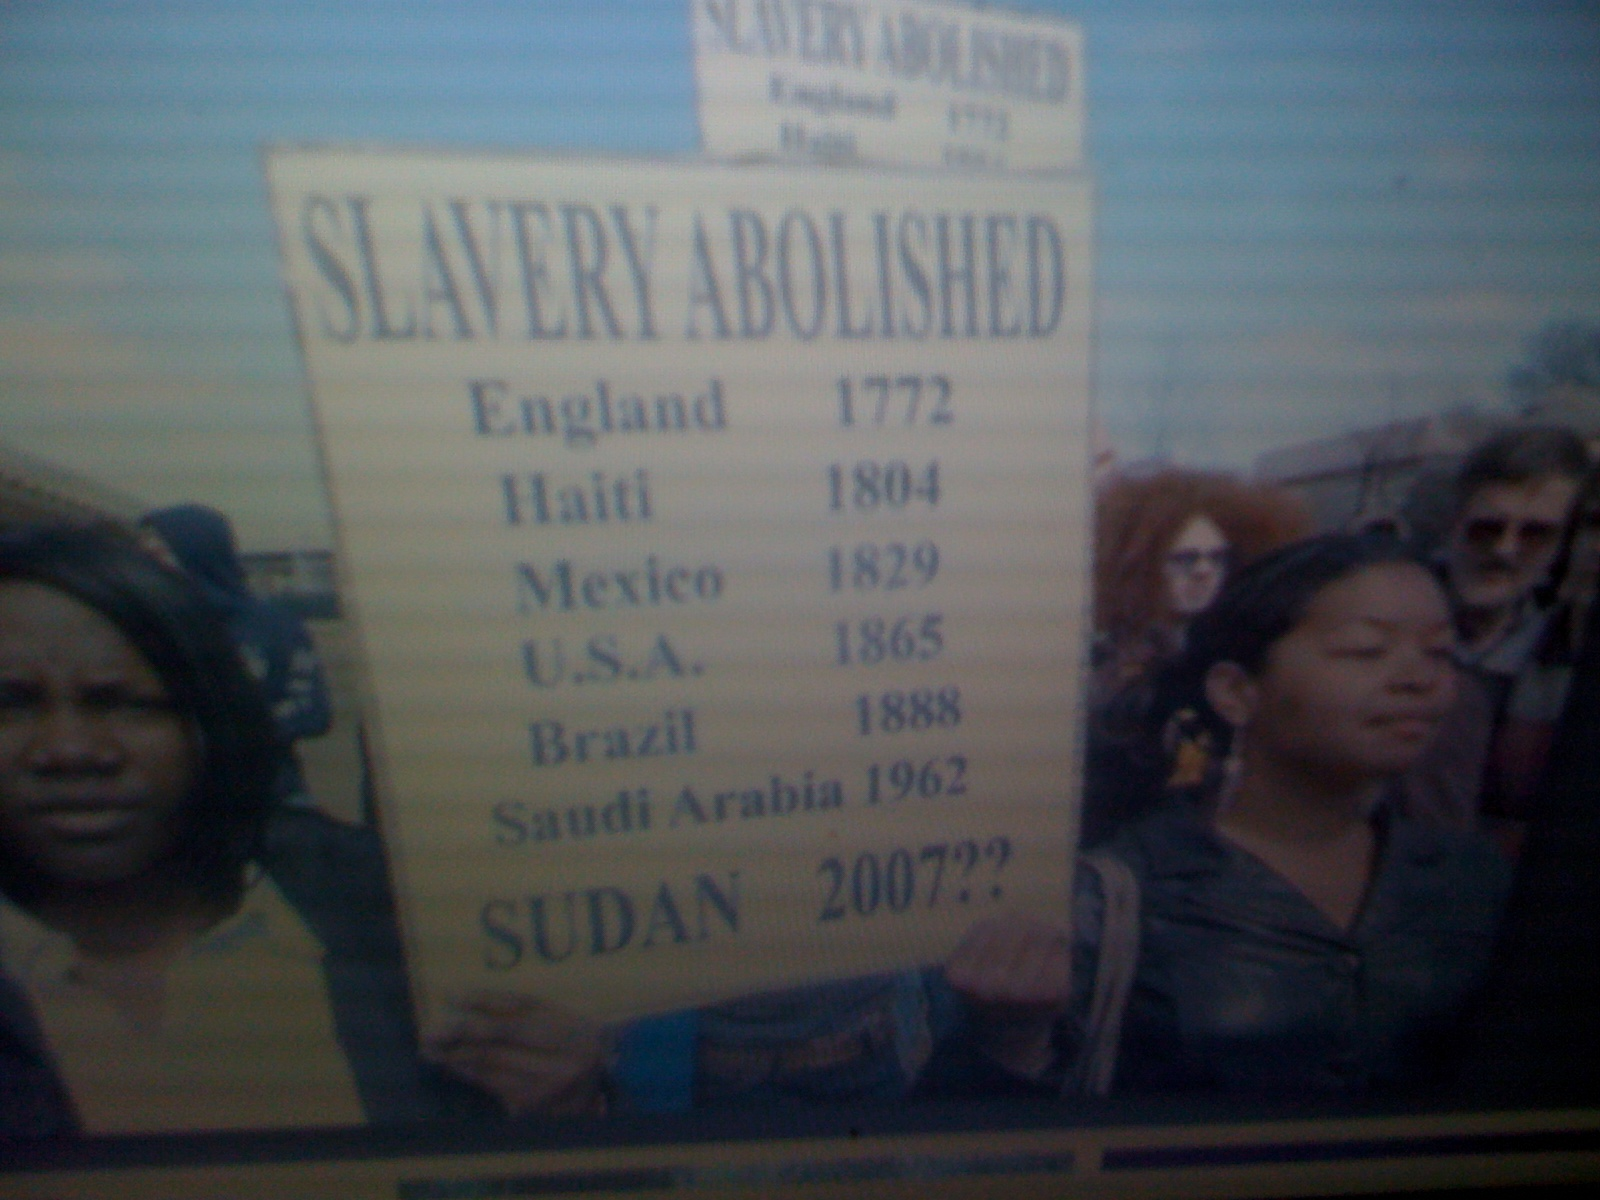 slave redemption in sudan Every two months, john eibner goes to sudan to buy back slavesusing donations paying for slavery unicef basically had maintained a public silence on slavery and redemption until february.